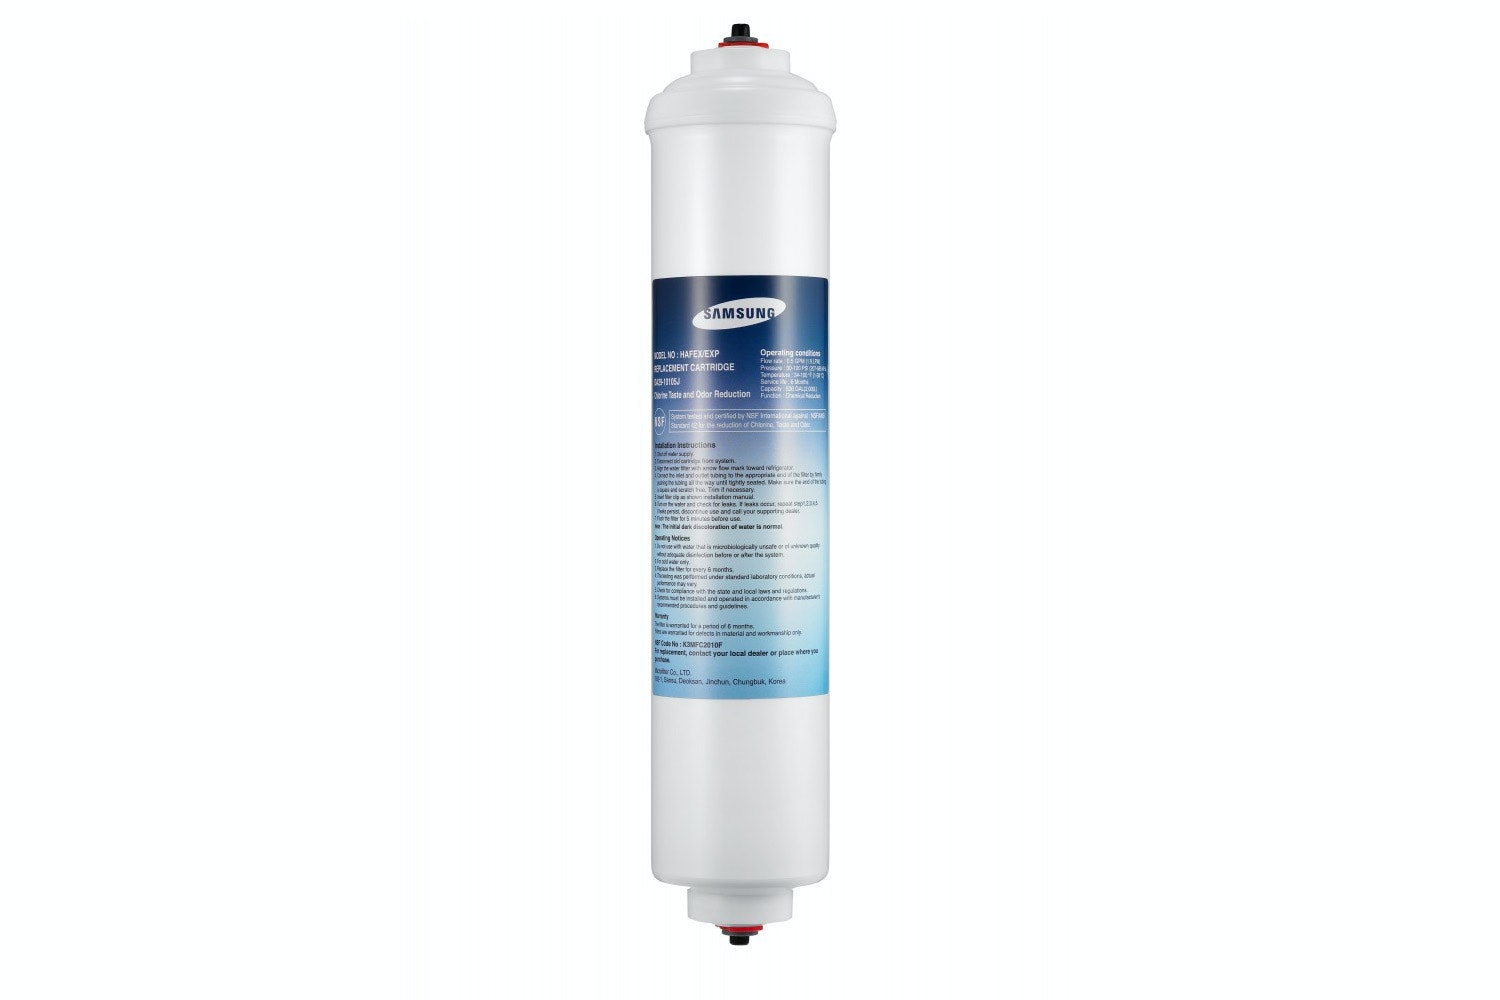 Samsung External Water Filter | HAFEX1/XEP